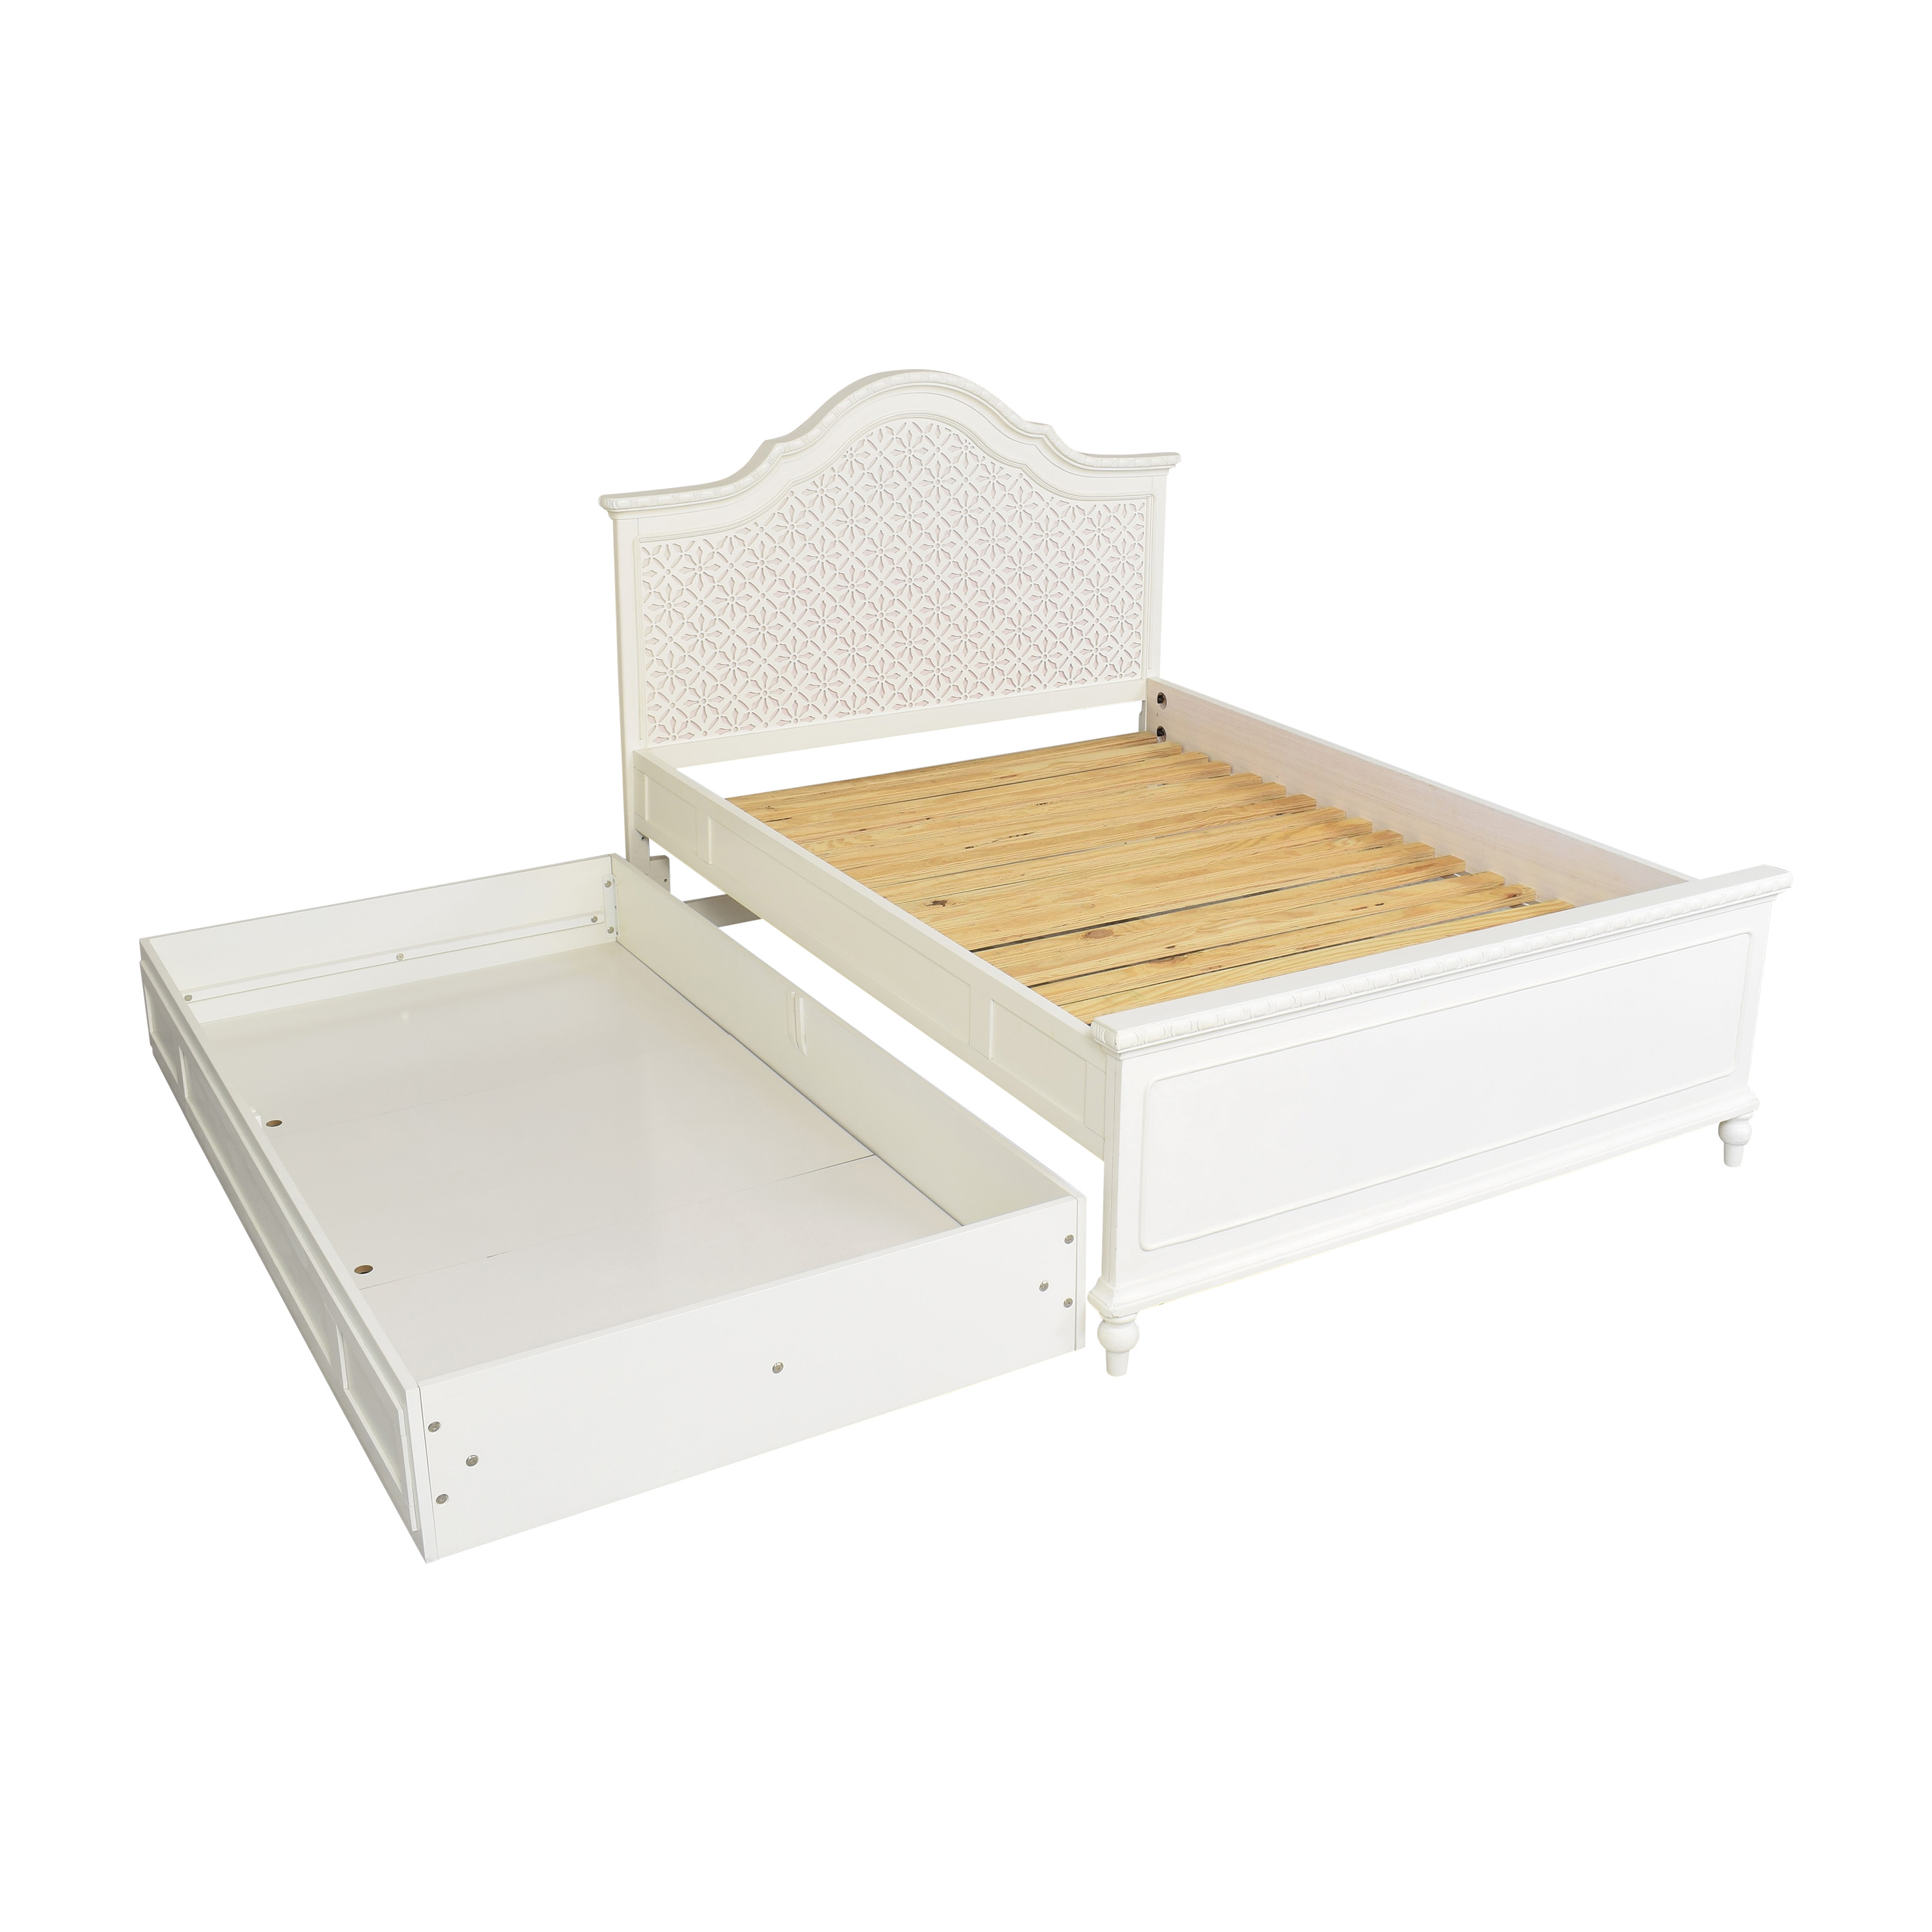 Universal Furniture Universal Furniture SmartStuff Bellamy Full Bed with Trundle Beds